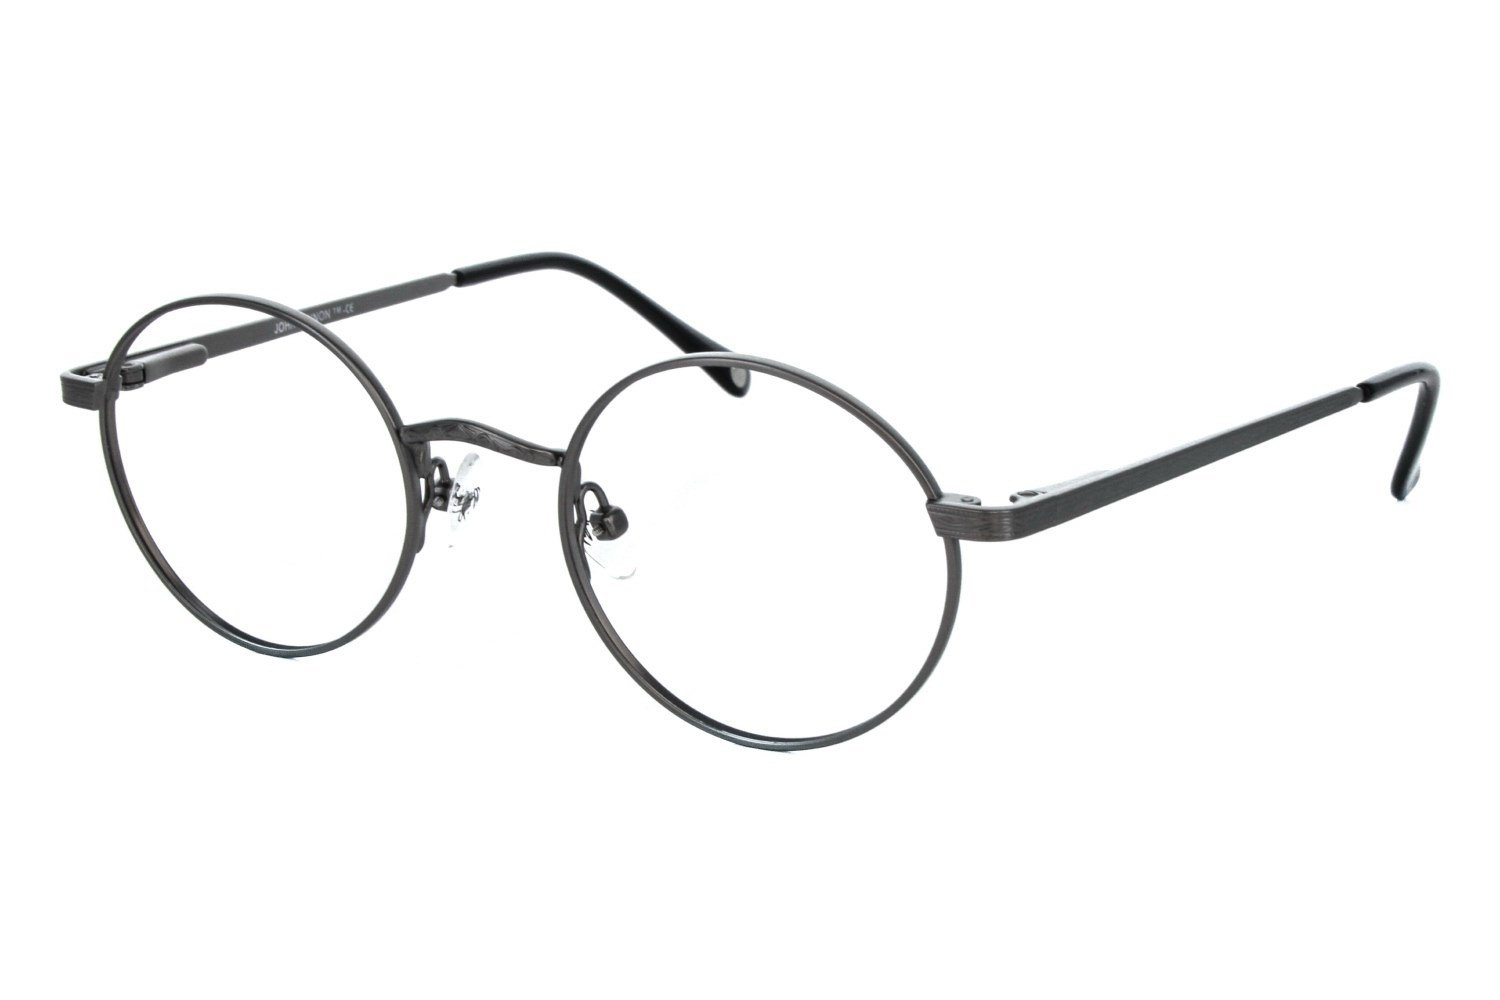 Glasses Frames John Lennon : John Lennon JL 310 Prescription Eyeglasses ...